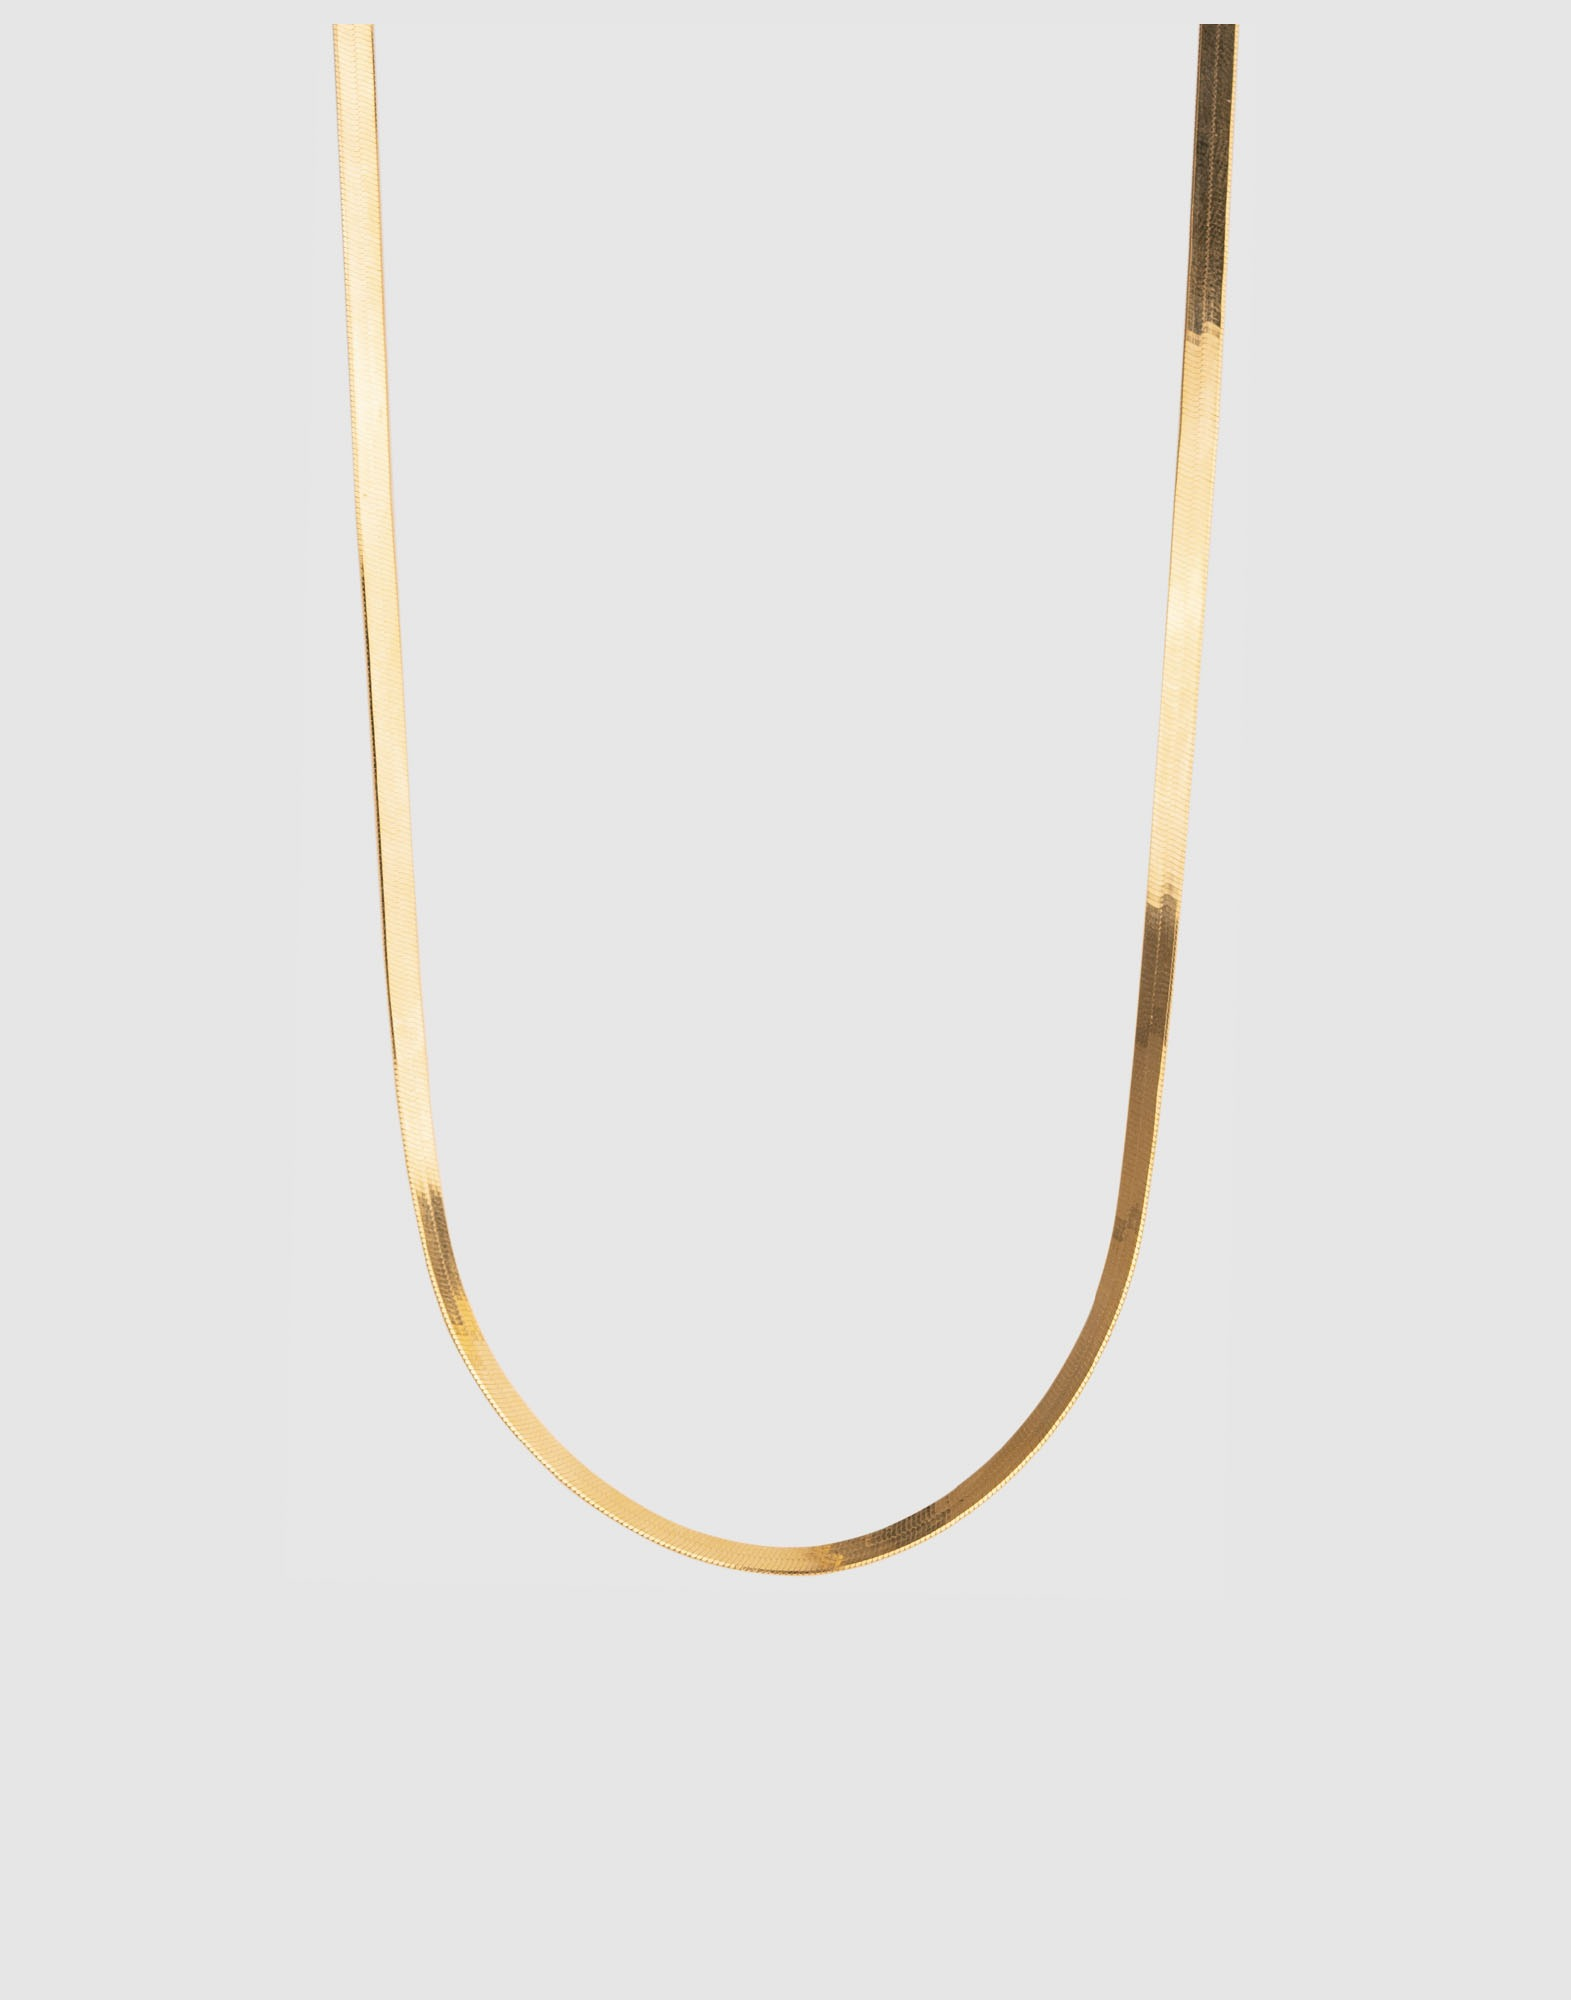 snake chain thin necklace (18k gold plated)